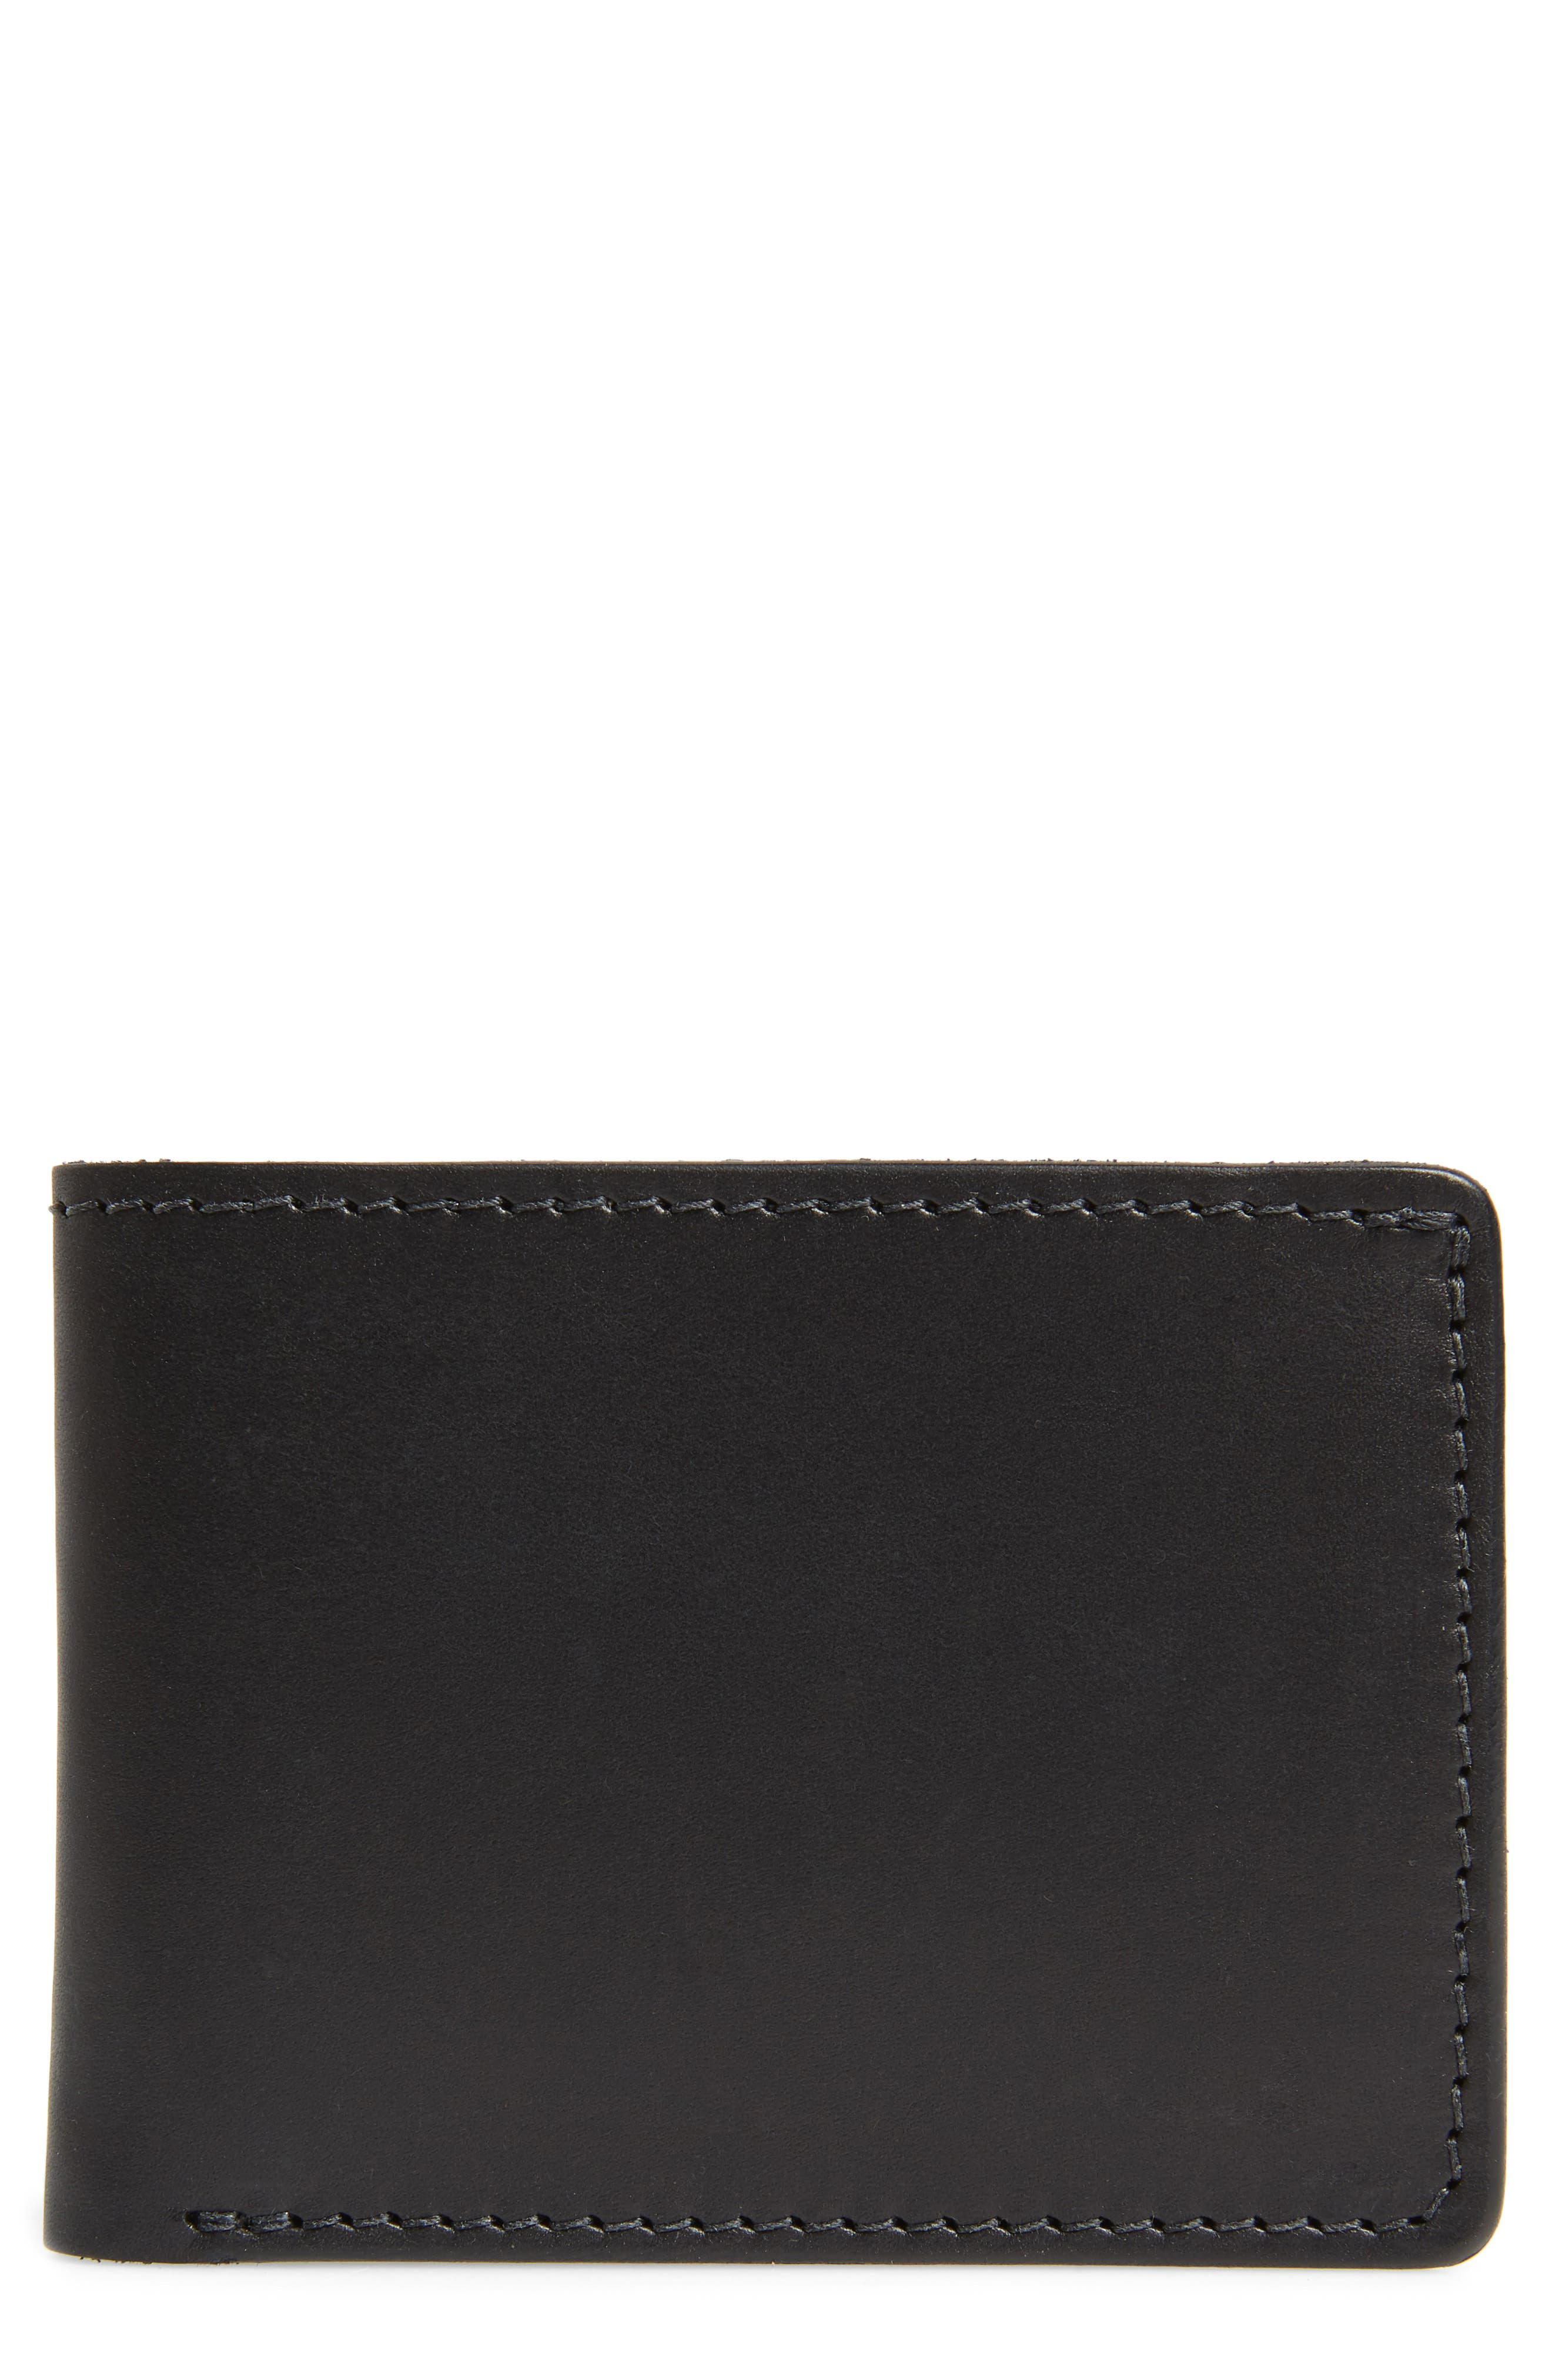 Utility Leather Bifold Wallet,                         Main,                         color, Black